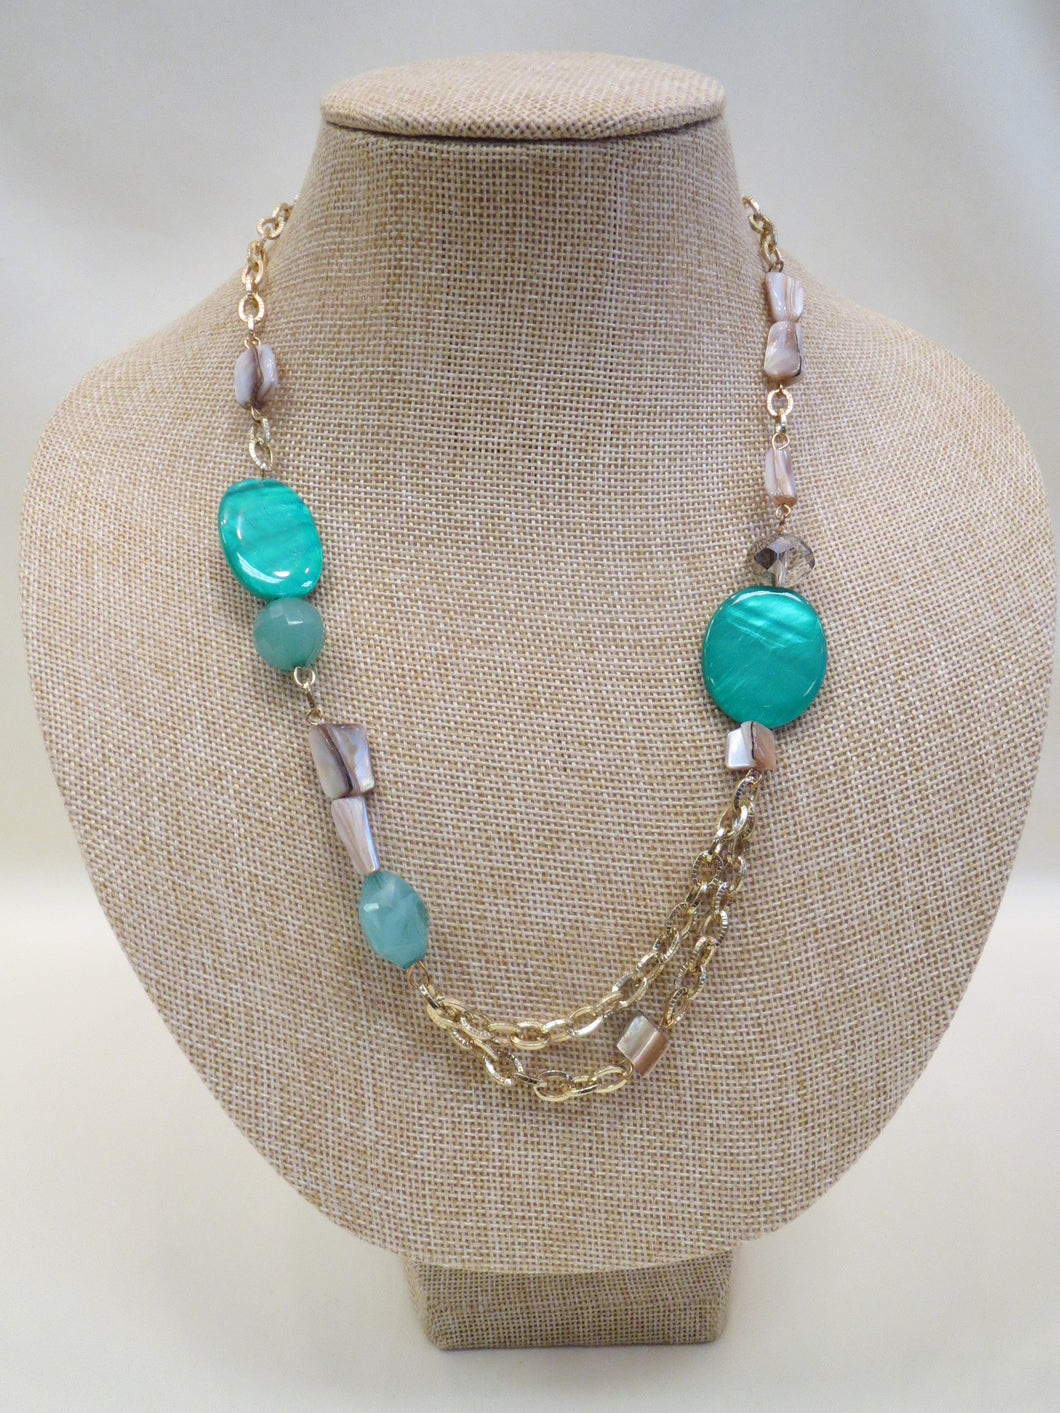 ADO | Green & Gold Necklace - All Decd Out